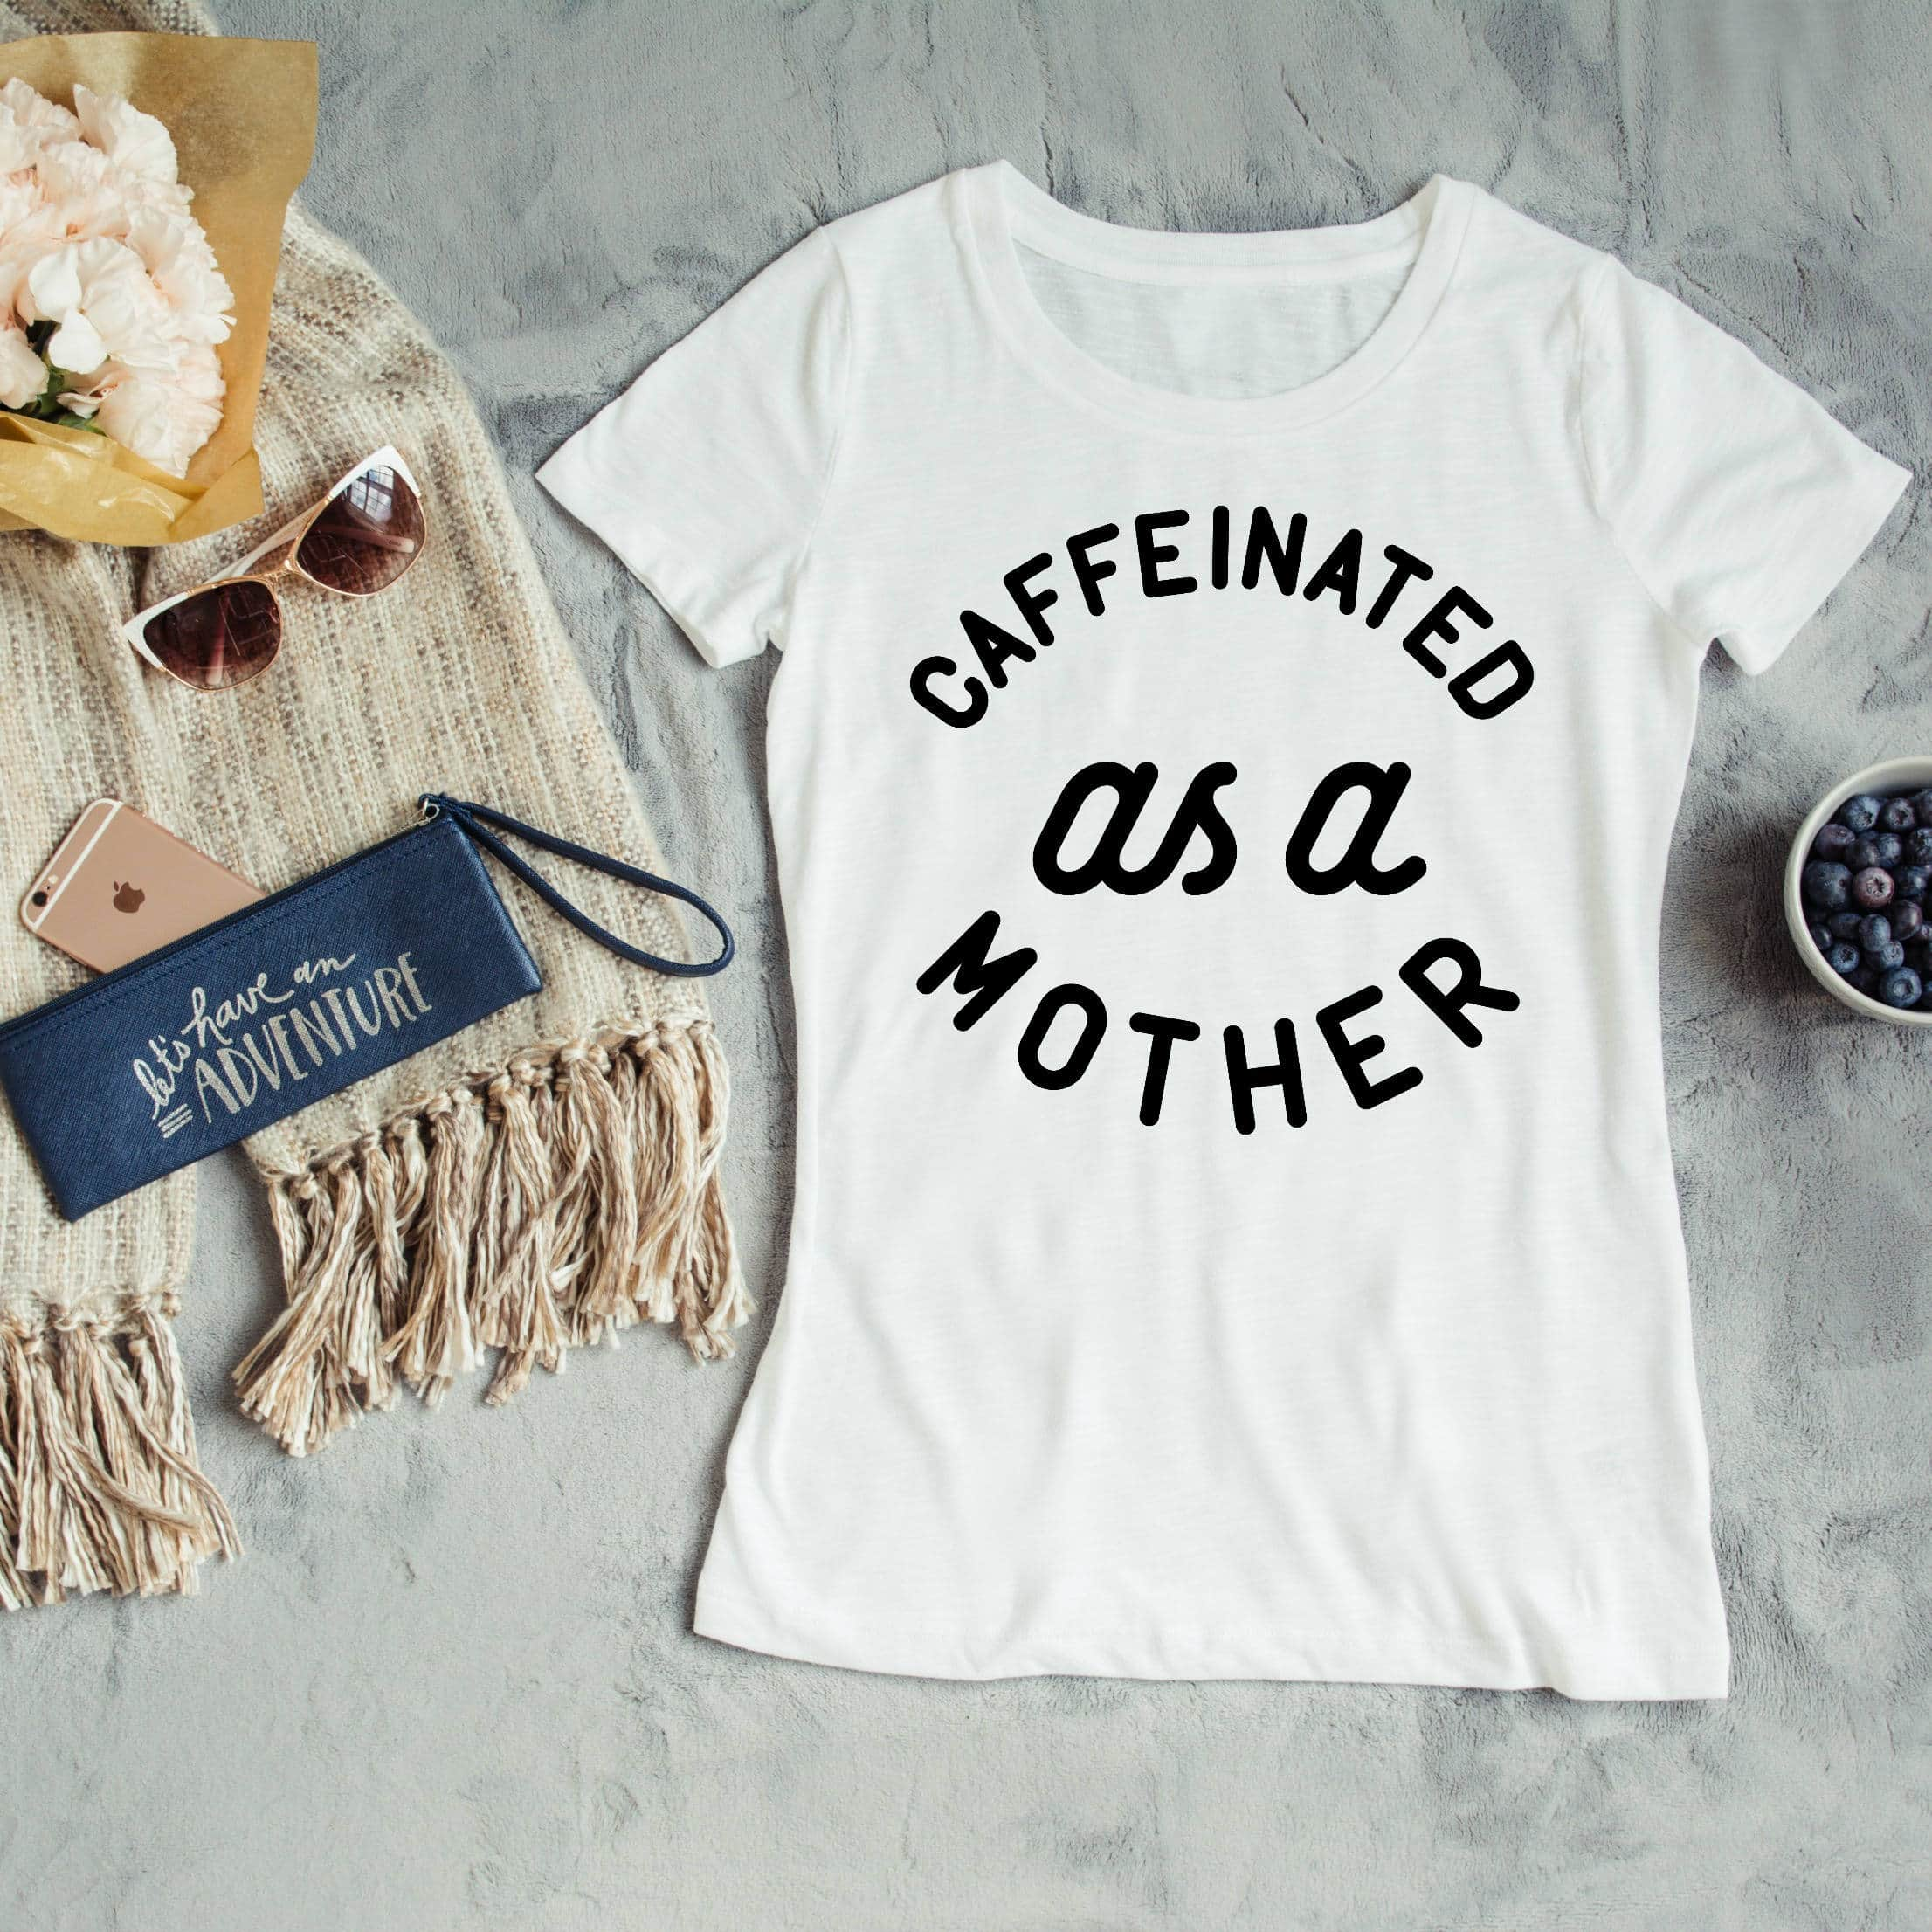 caffeinated as a mother tee